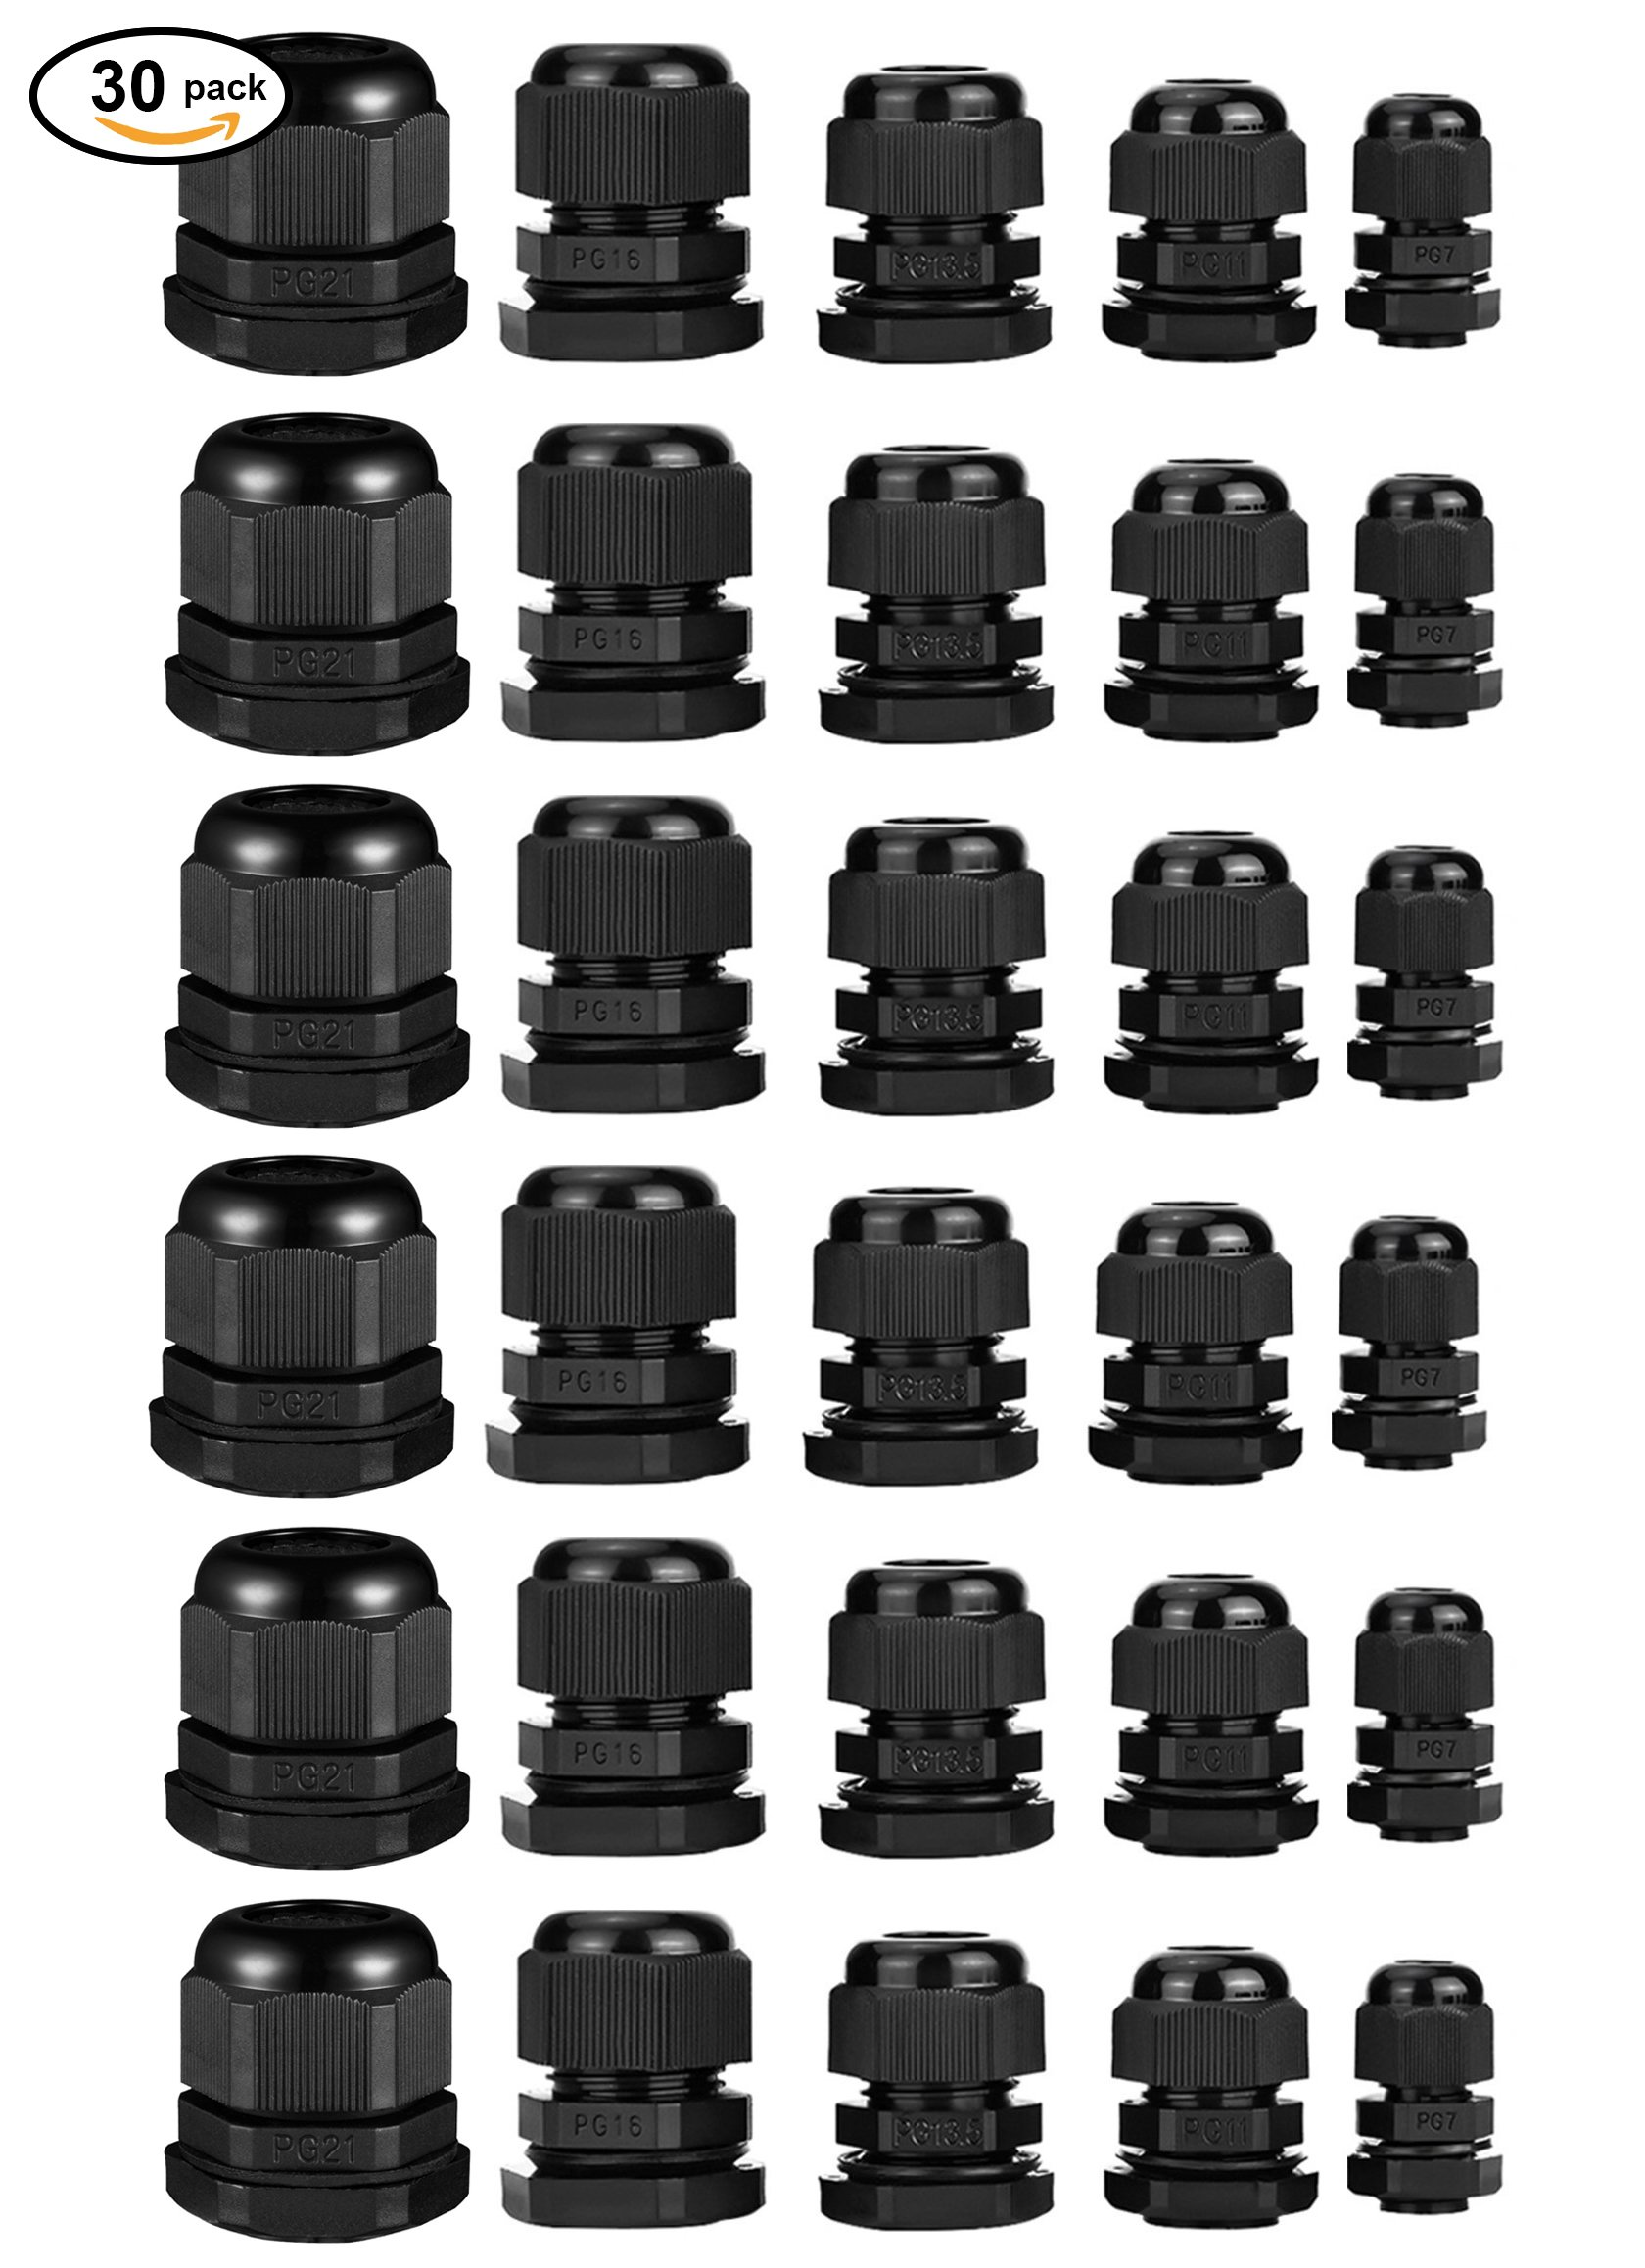 ZXHAO PG7 PG11 PG13.5 PG16 PG21 Black Nylon Waterproof Cable Gland Adjustable Locknut Set for 3mm-18mm (0.12''-0.71'') Dia Cable Wire 30PCS